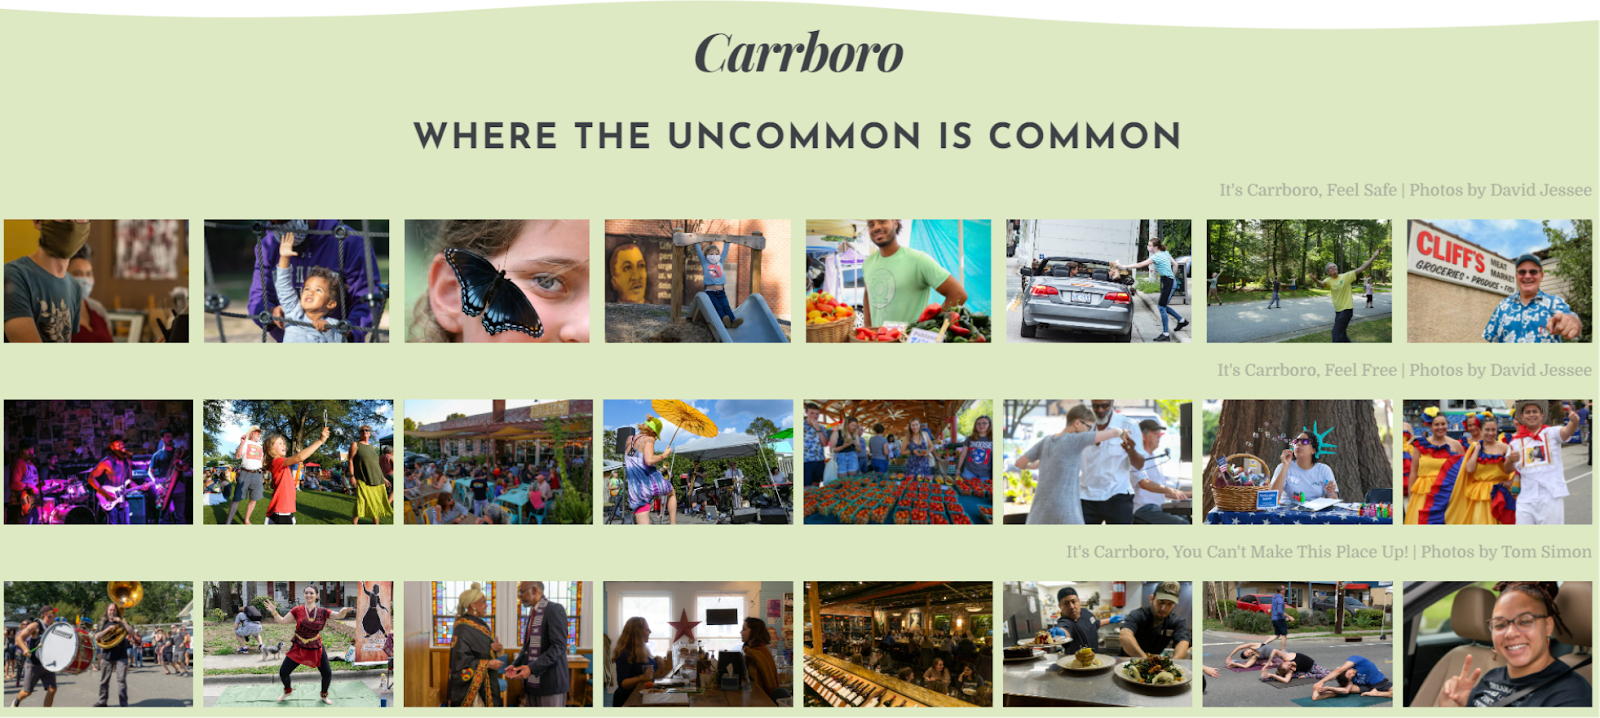 WheretheCommonIsUncommon